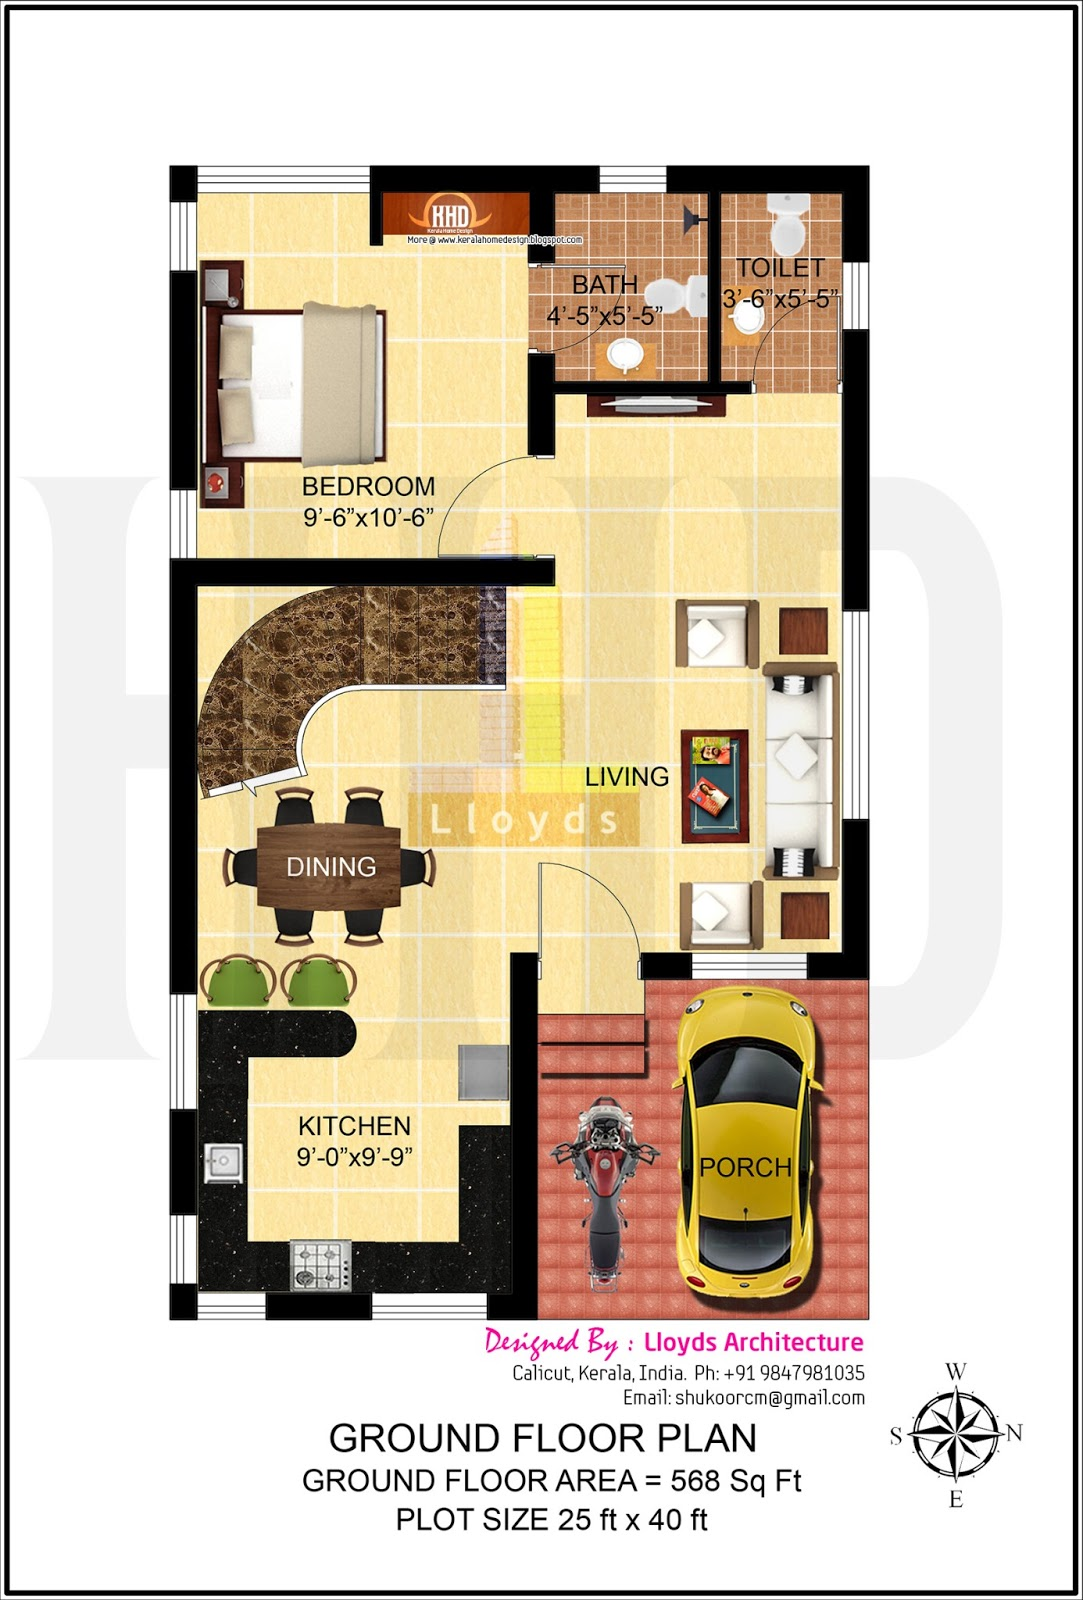 4 bedroom house plan in less than 3 cents kerala home for Houde plans